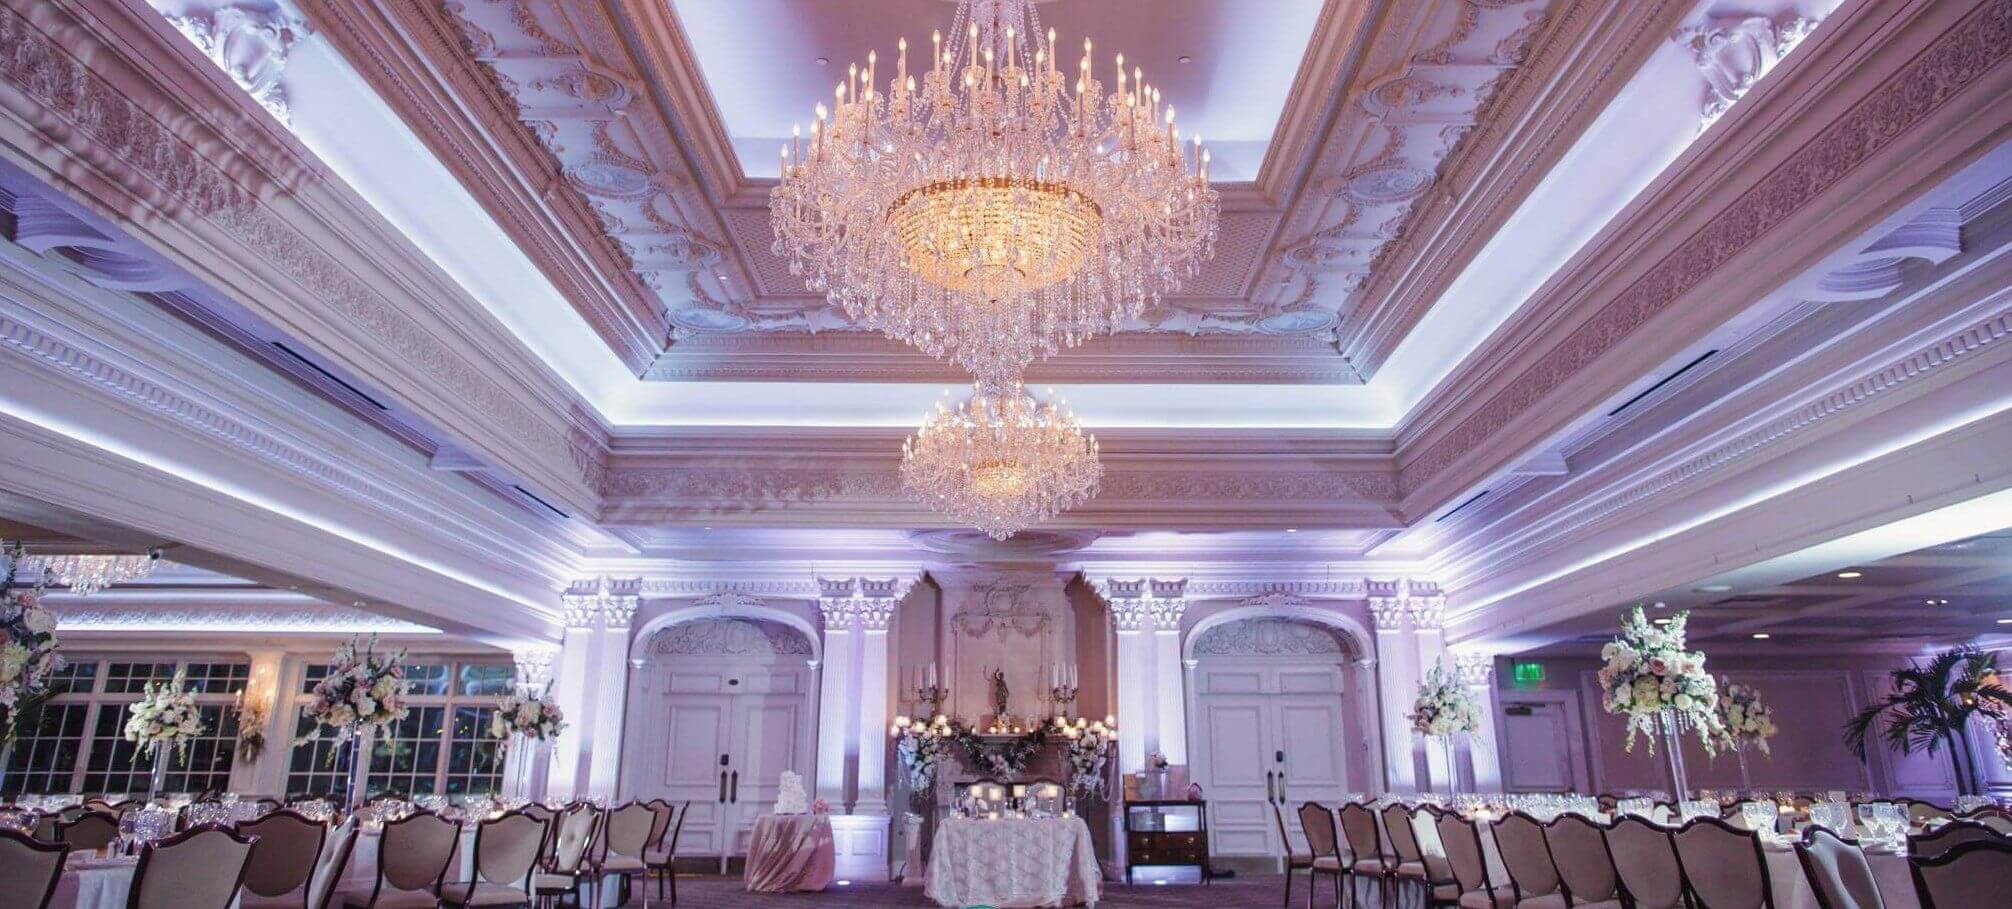 Best Wedding Venue in New Jersey, Wedding Reception Venues